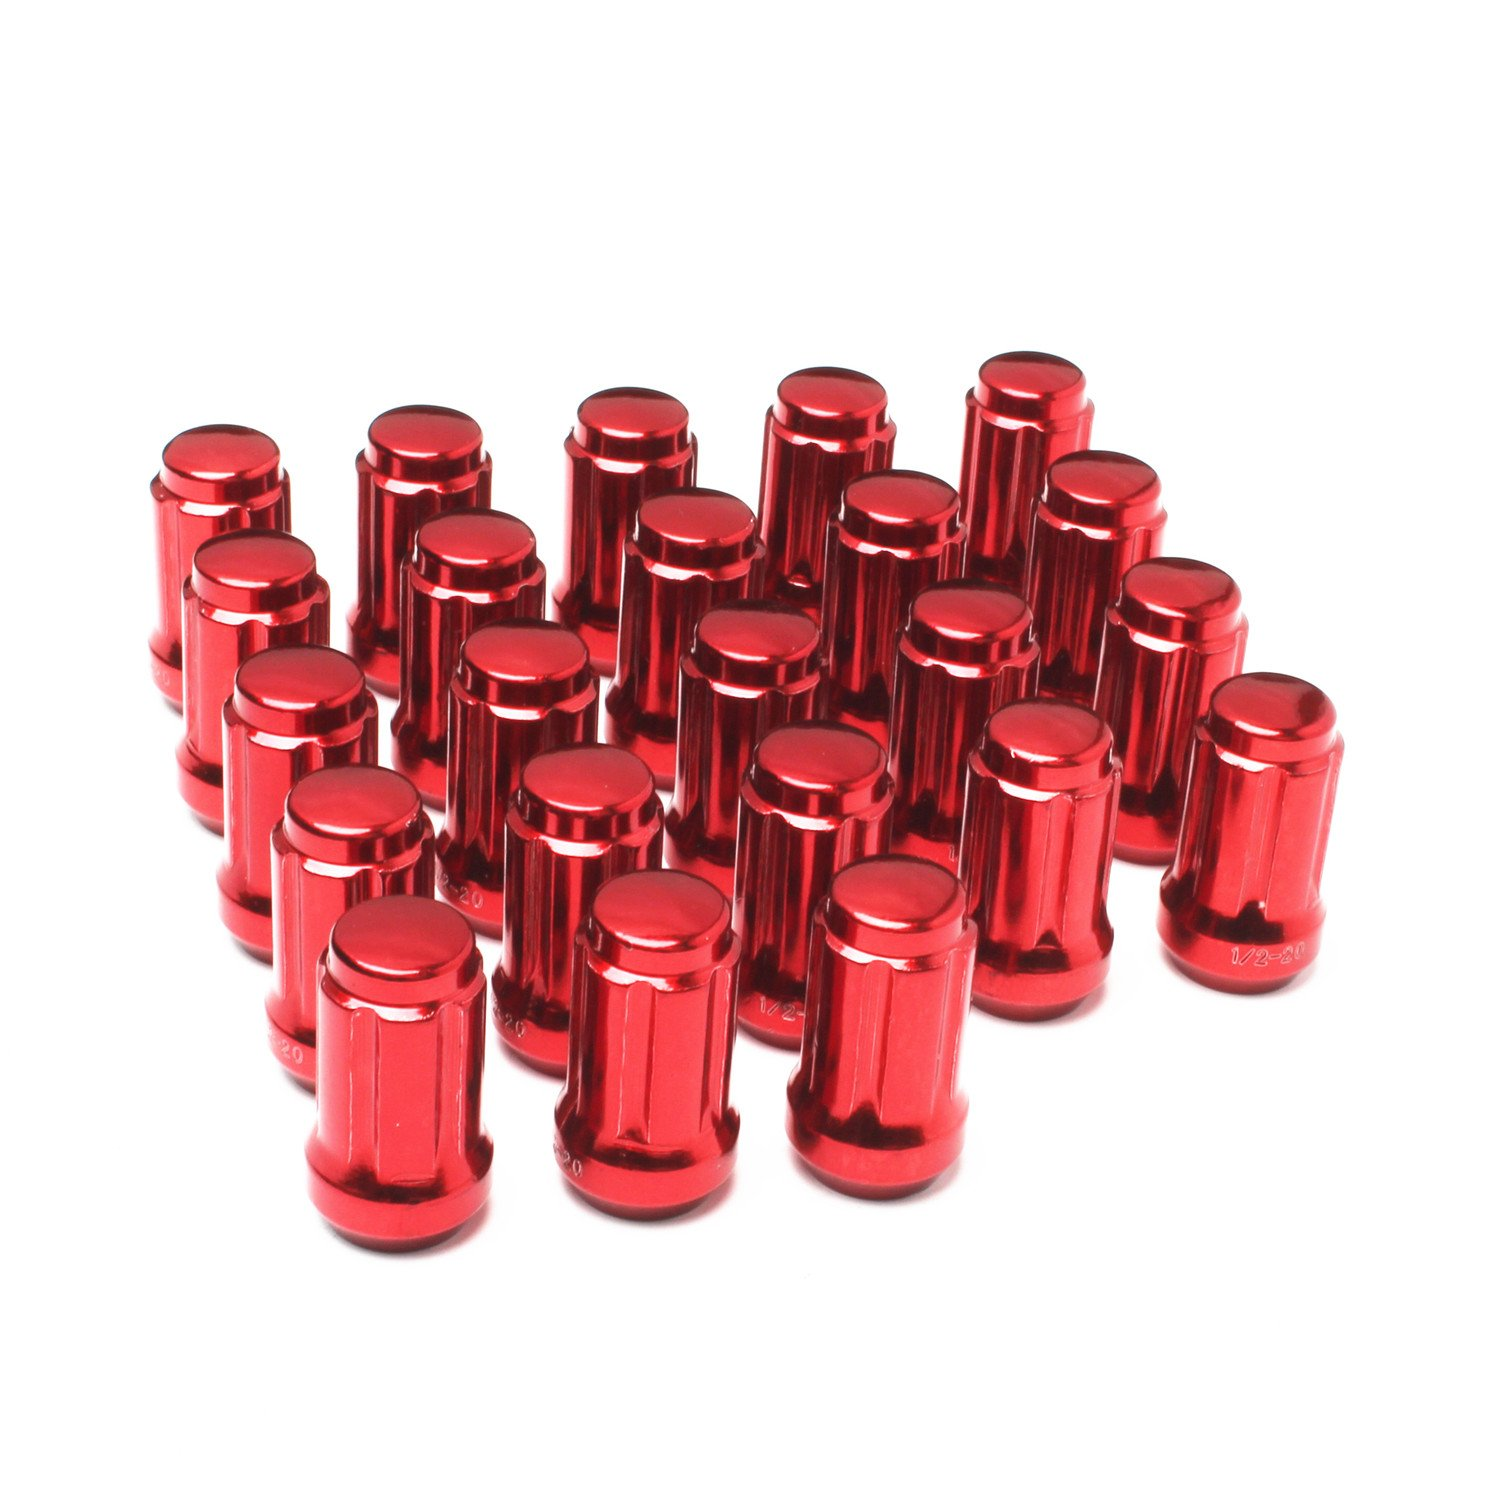 APL-N021R Set of 23pcs 1//2 x 20 with 2 Keys 1.38 35mm Red 6 Spline Lug Nuts Closed End Long fit Jeep Dodge Ford Lincoln Mercury